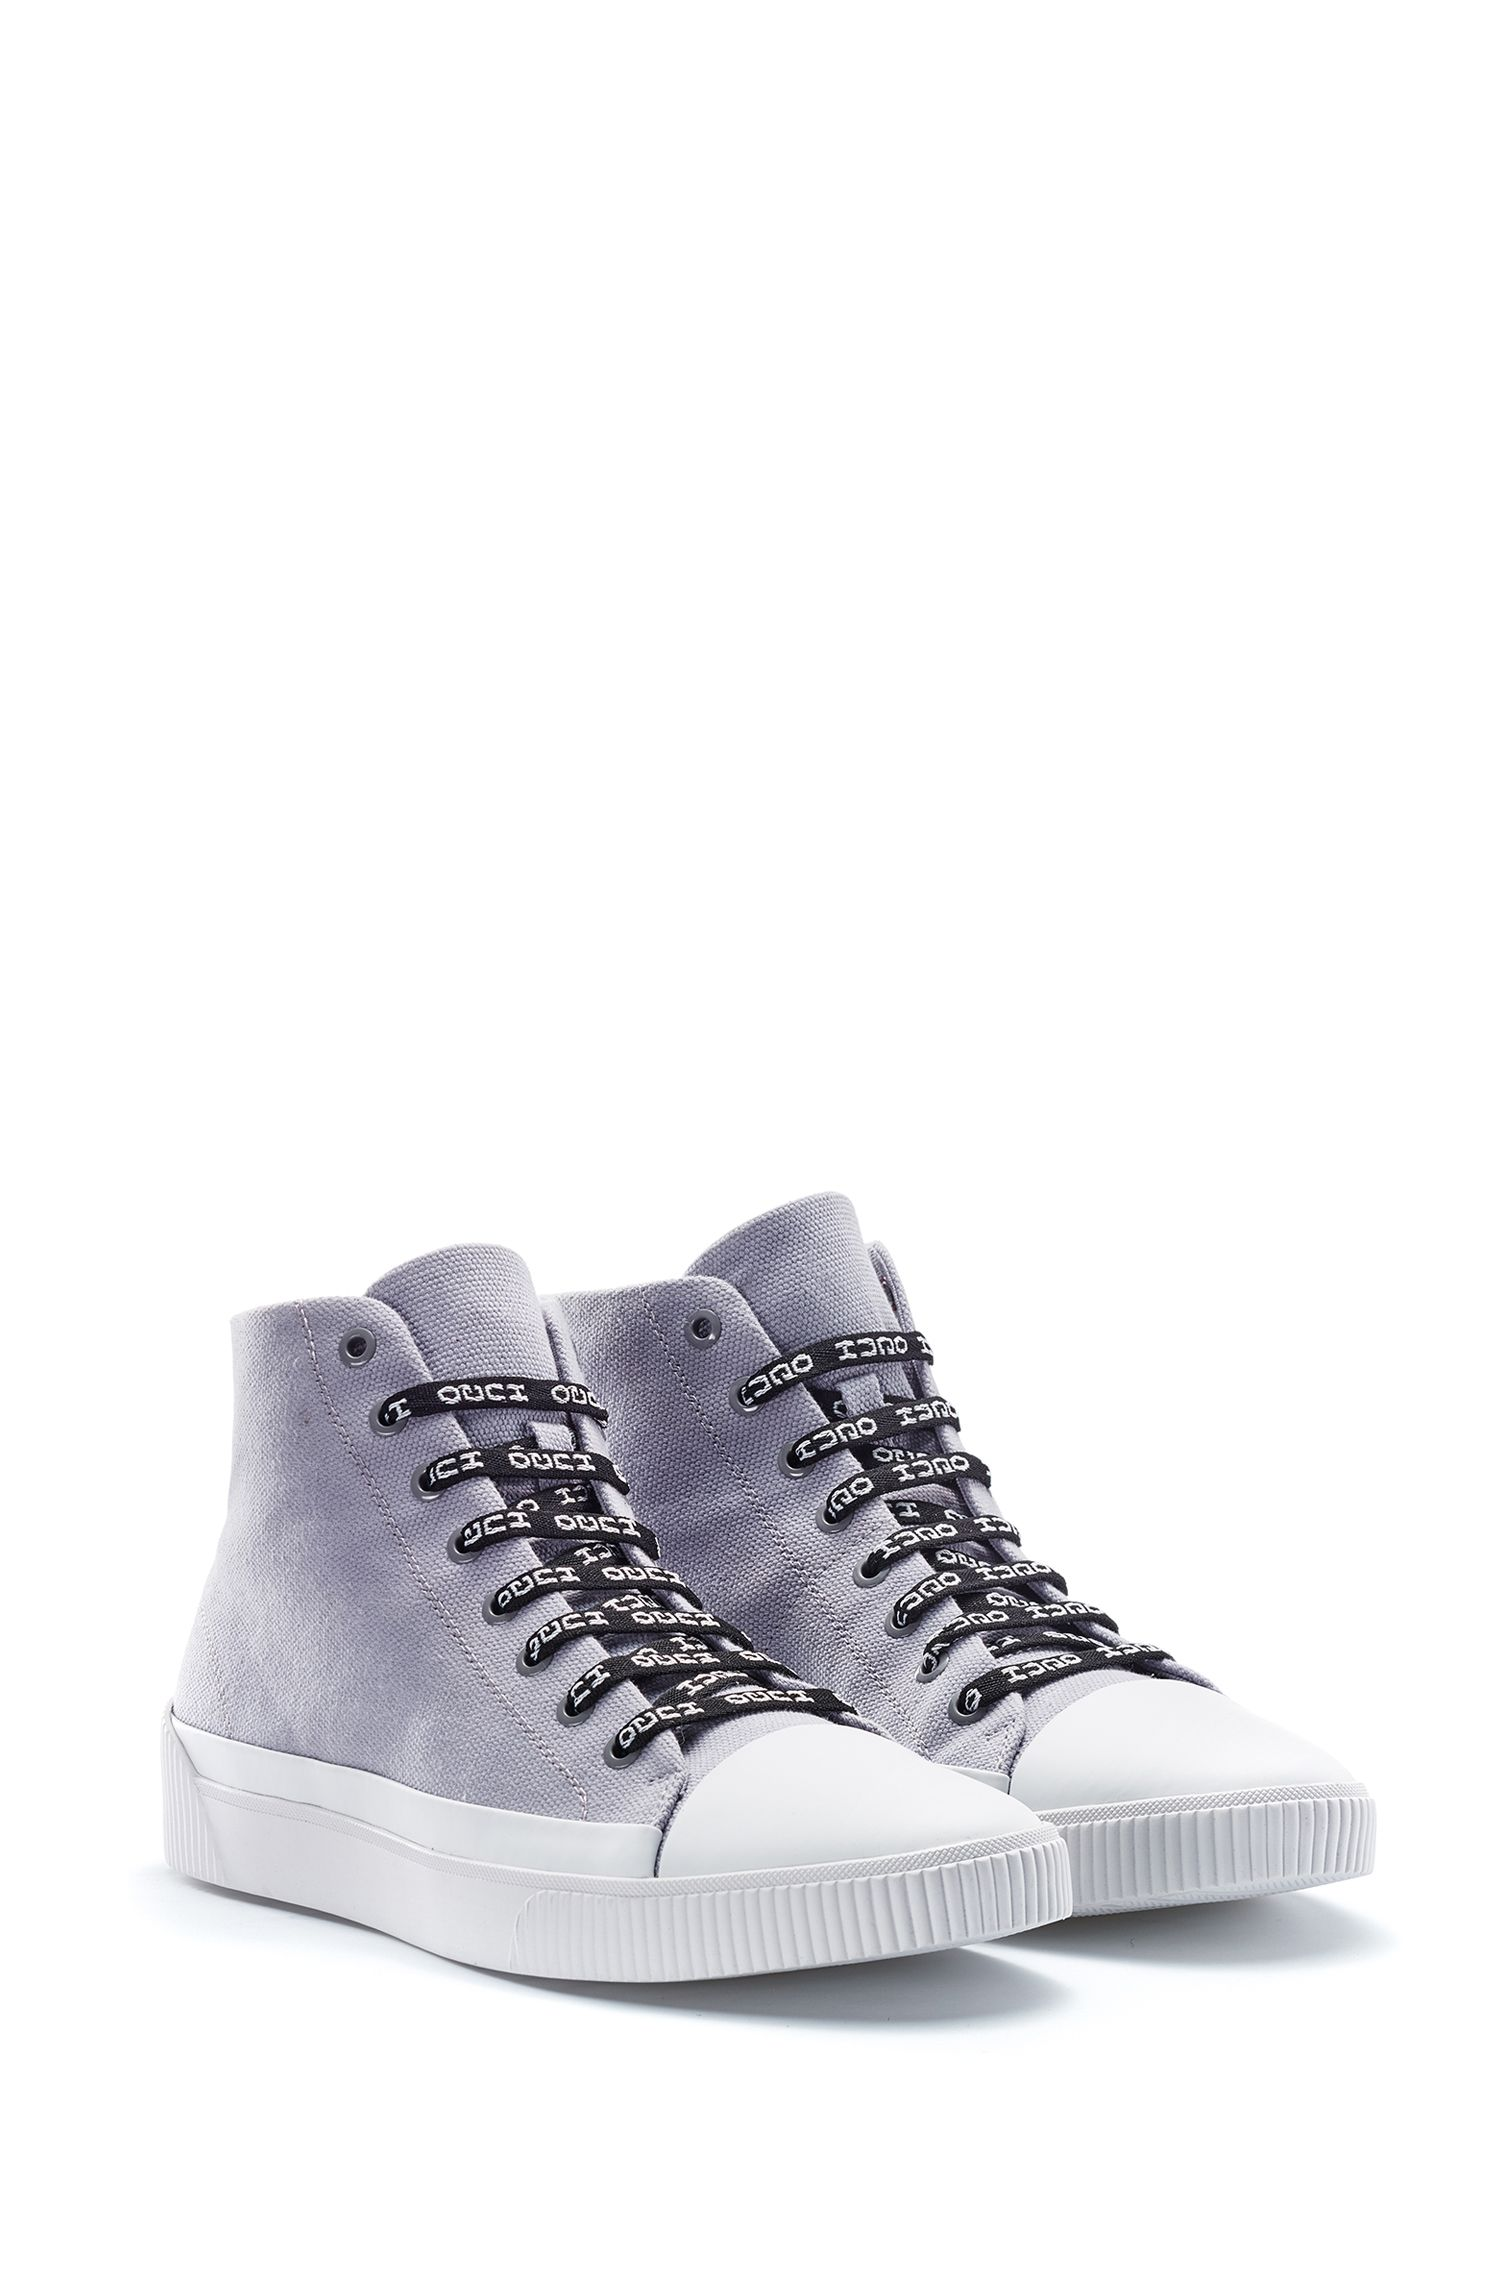 High-top sneakers in canvas with reverse-logo laces, Grey